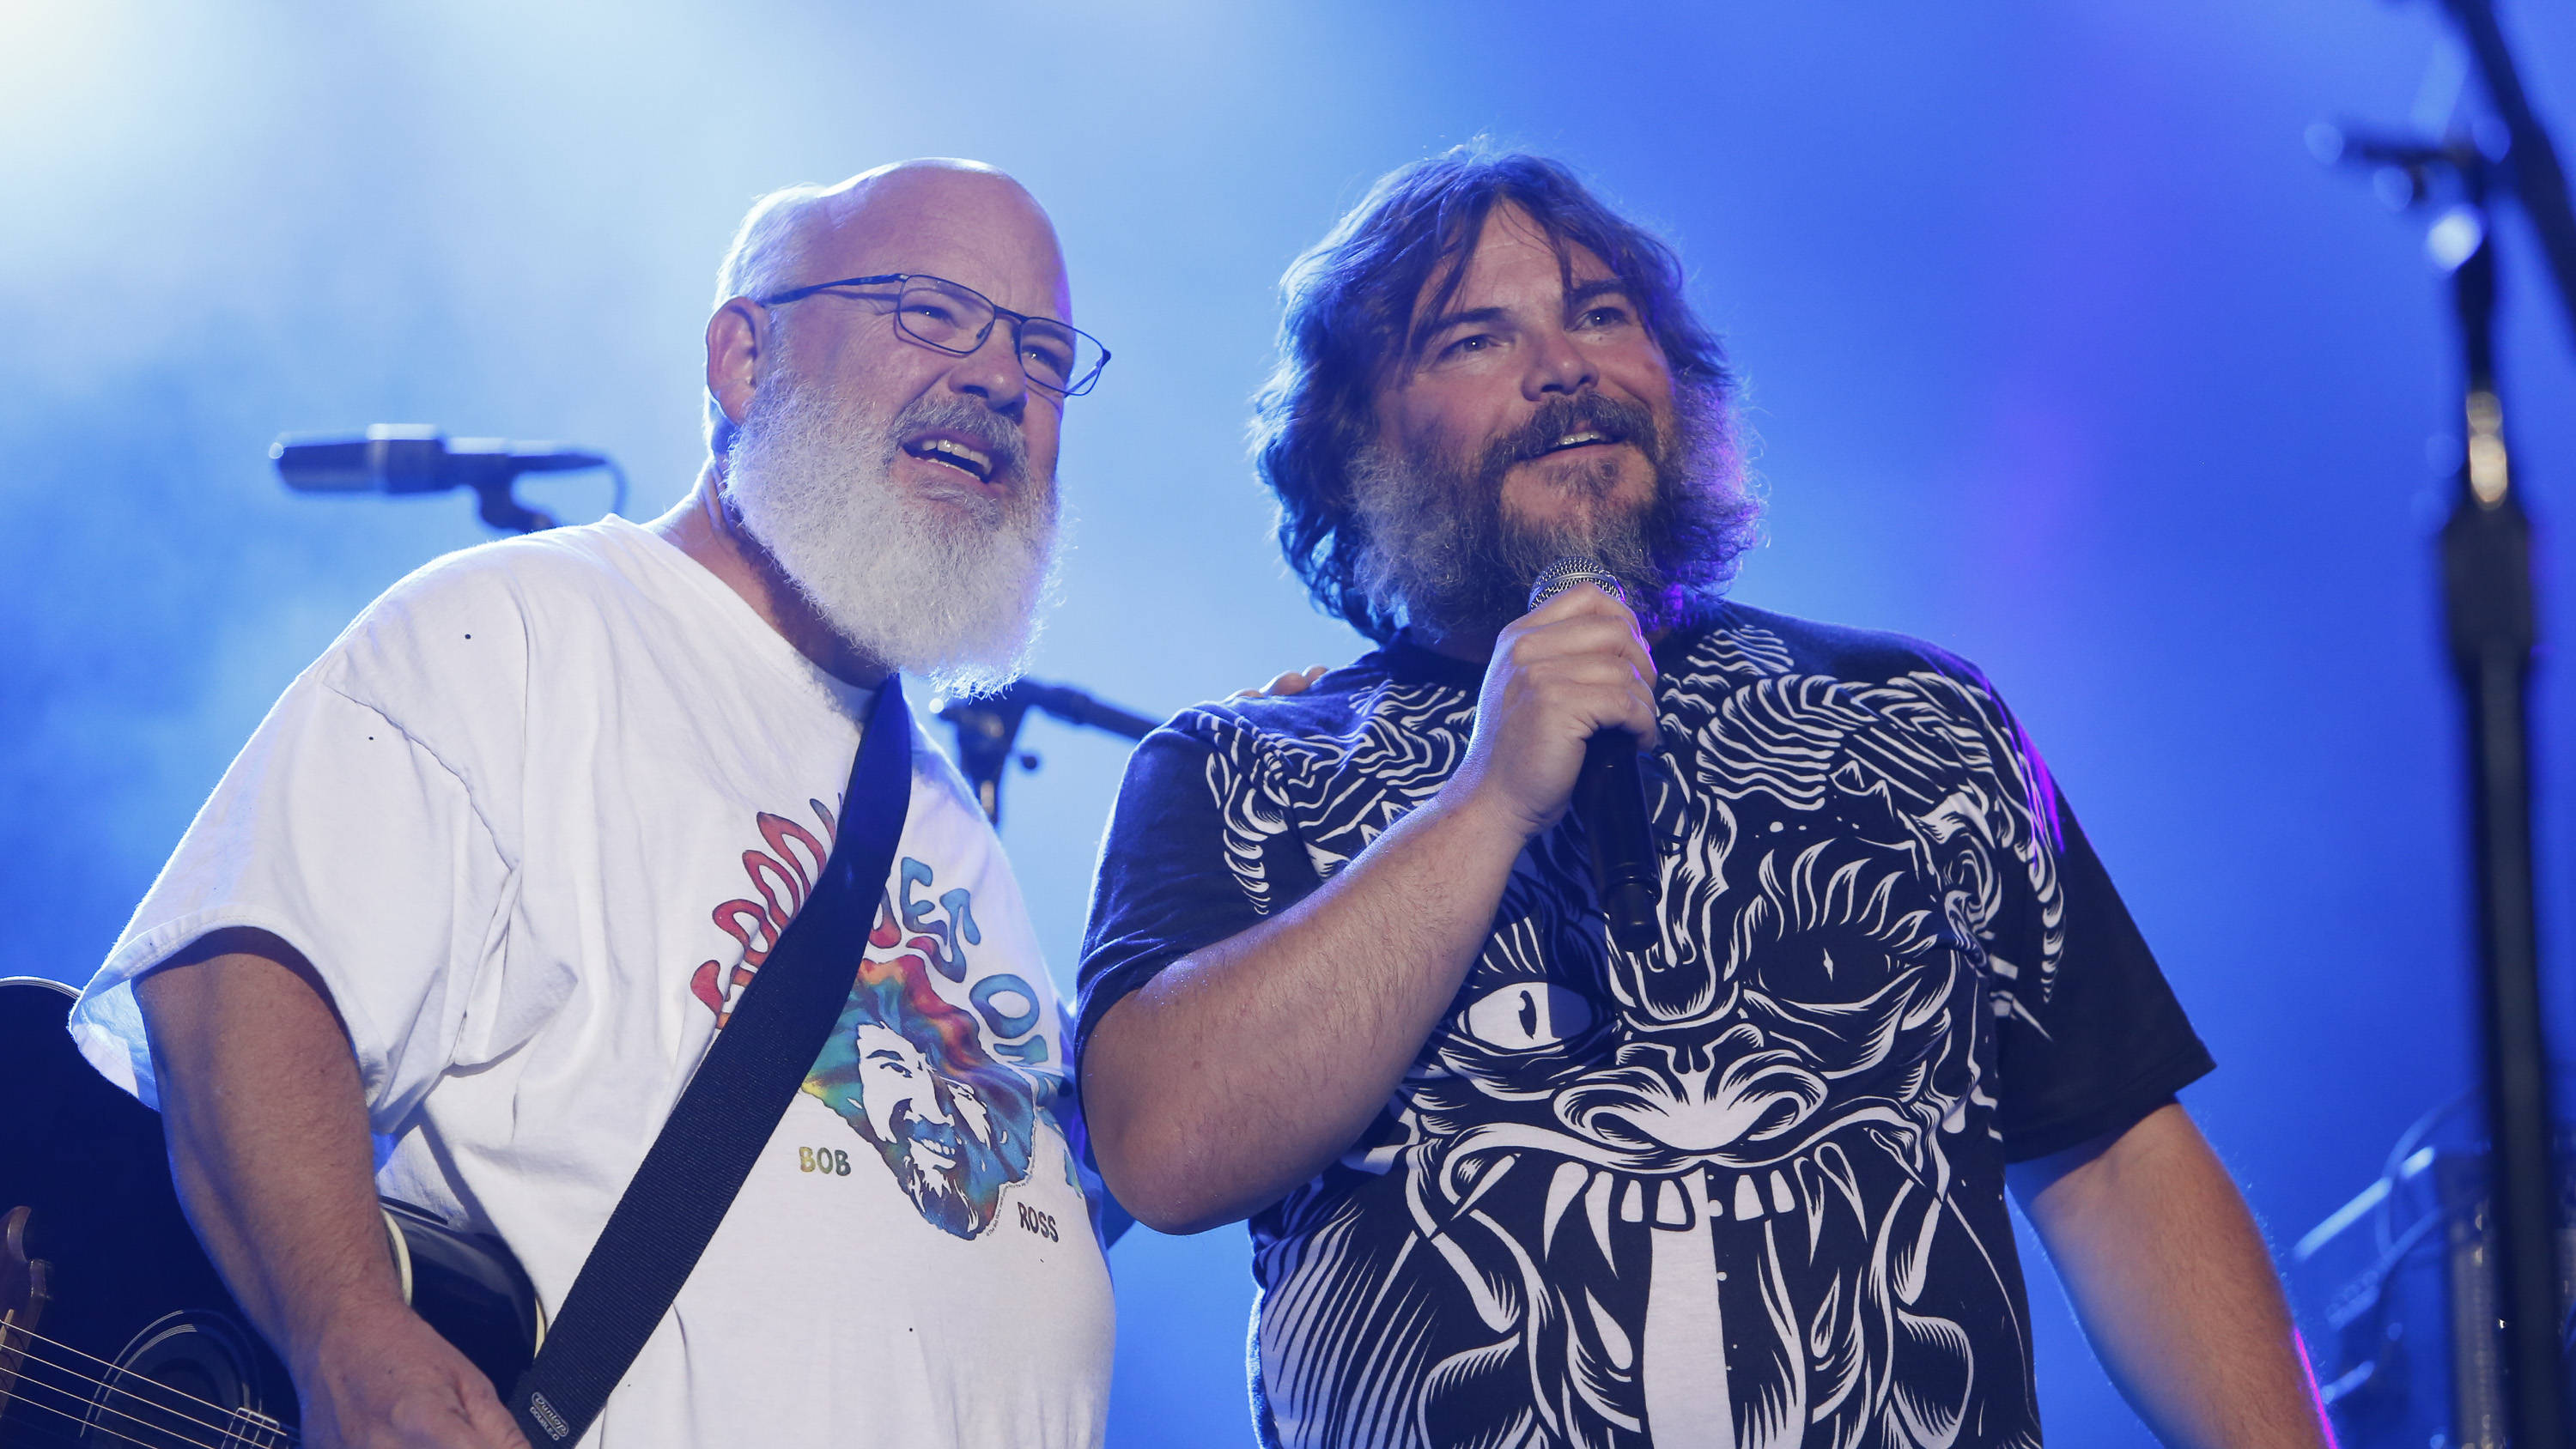 VIDEO: What does the D in Tenacious D stand for?